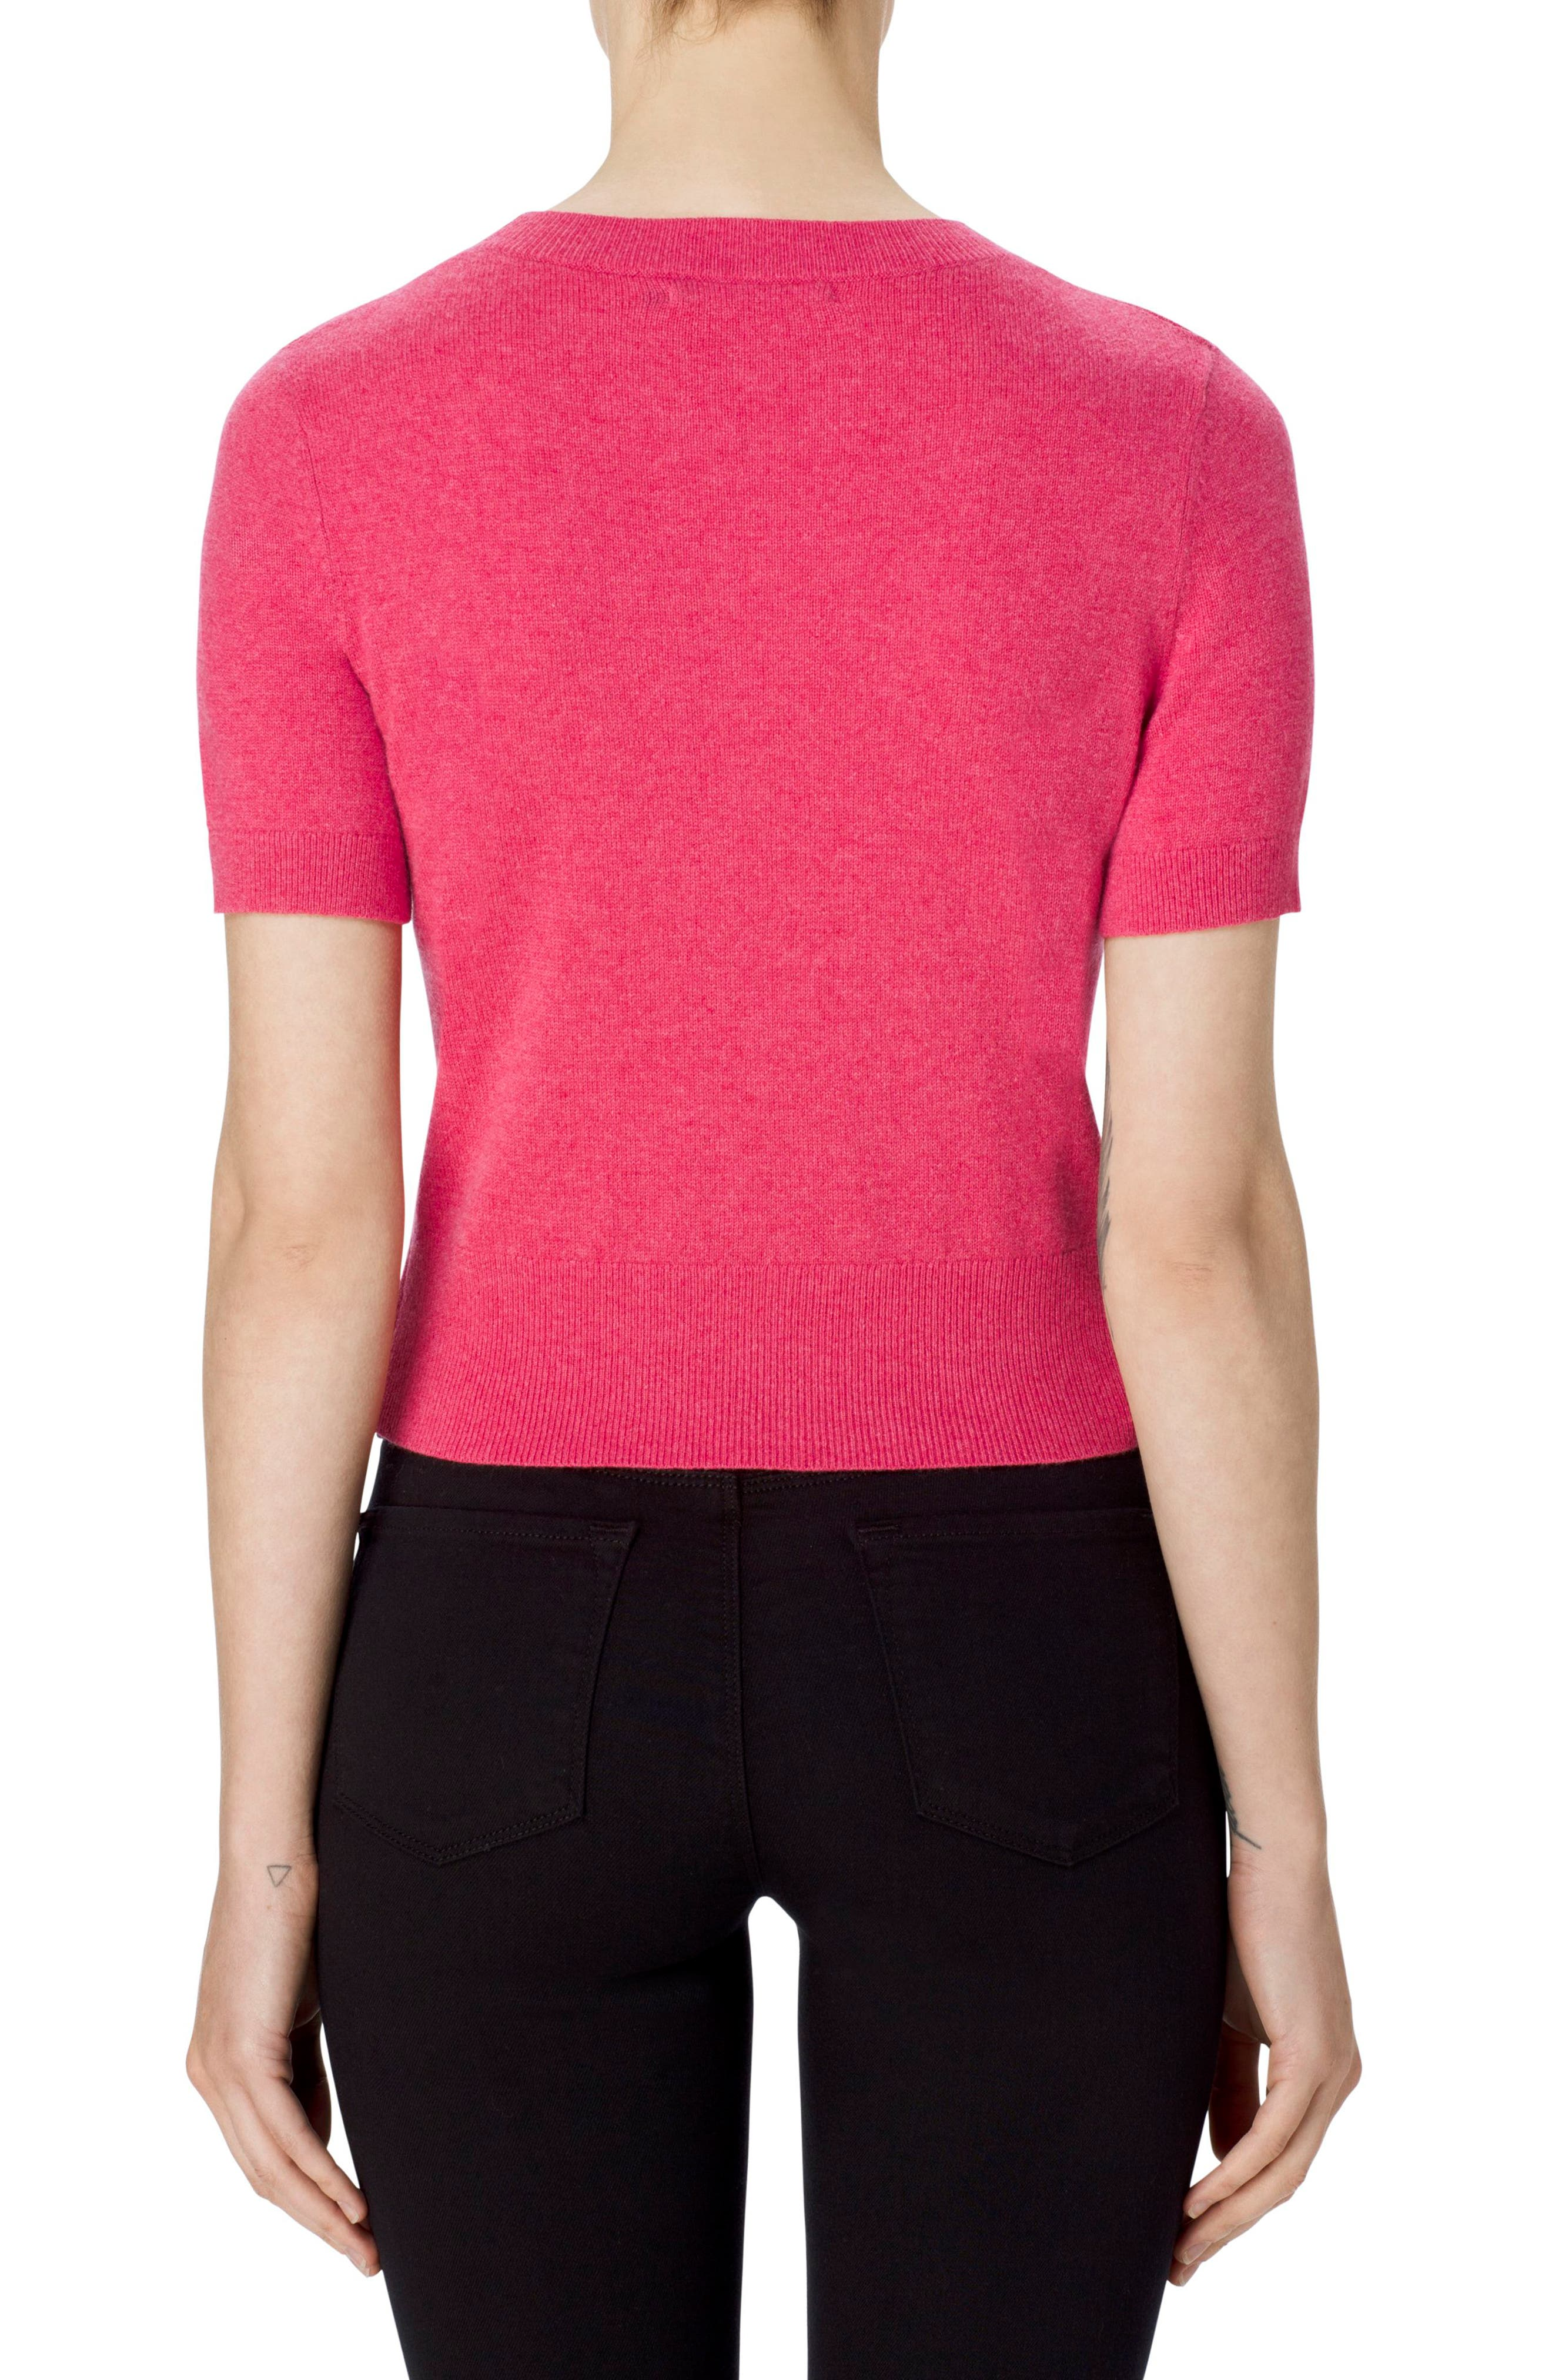 Briony Cashmere Sweater,                             Alternate thumbnail 2, color,                             824